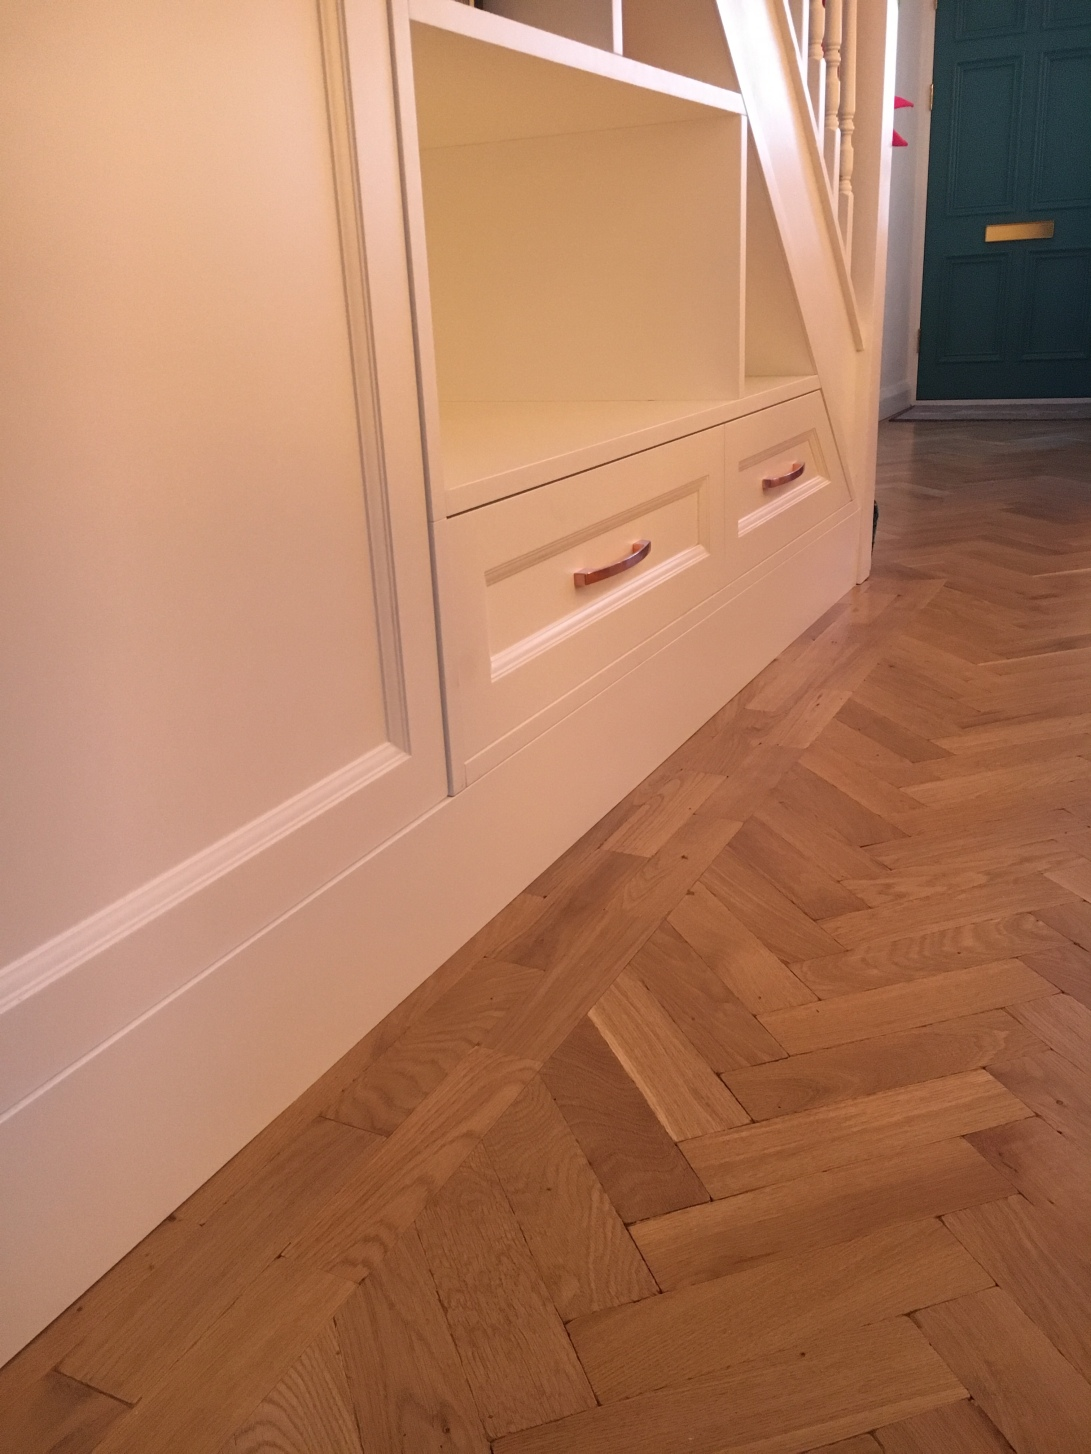 Under stair cupboards with brass handle detail on drawers